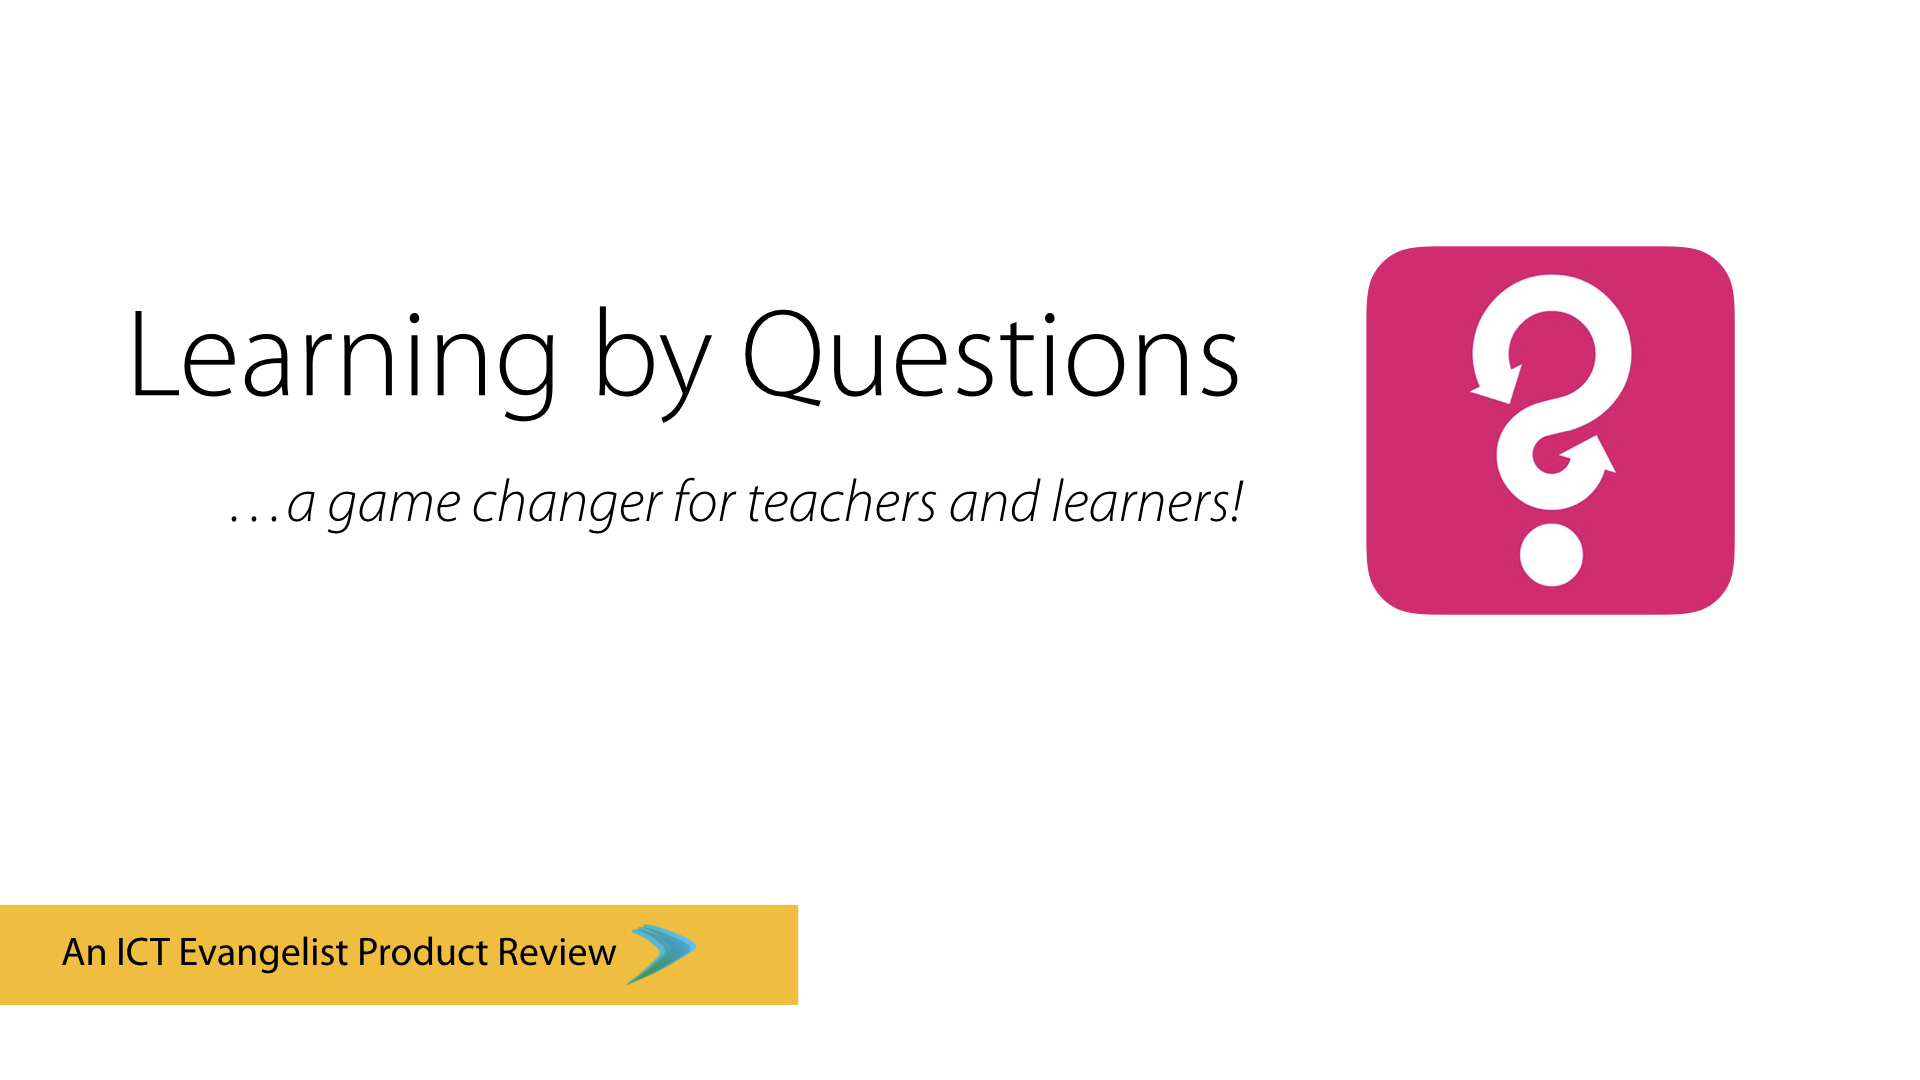 Learning by Questions